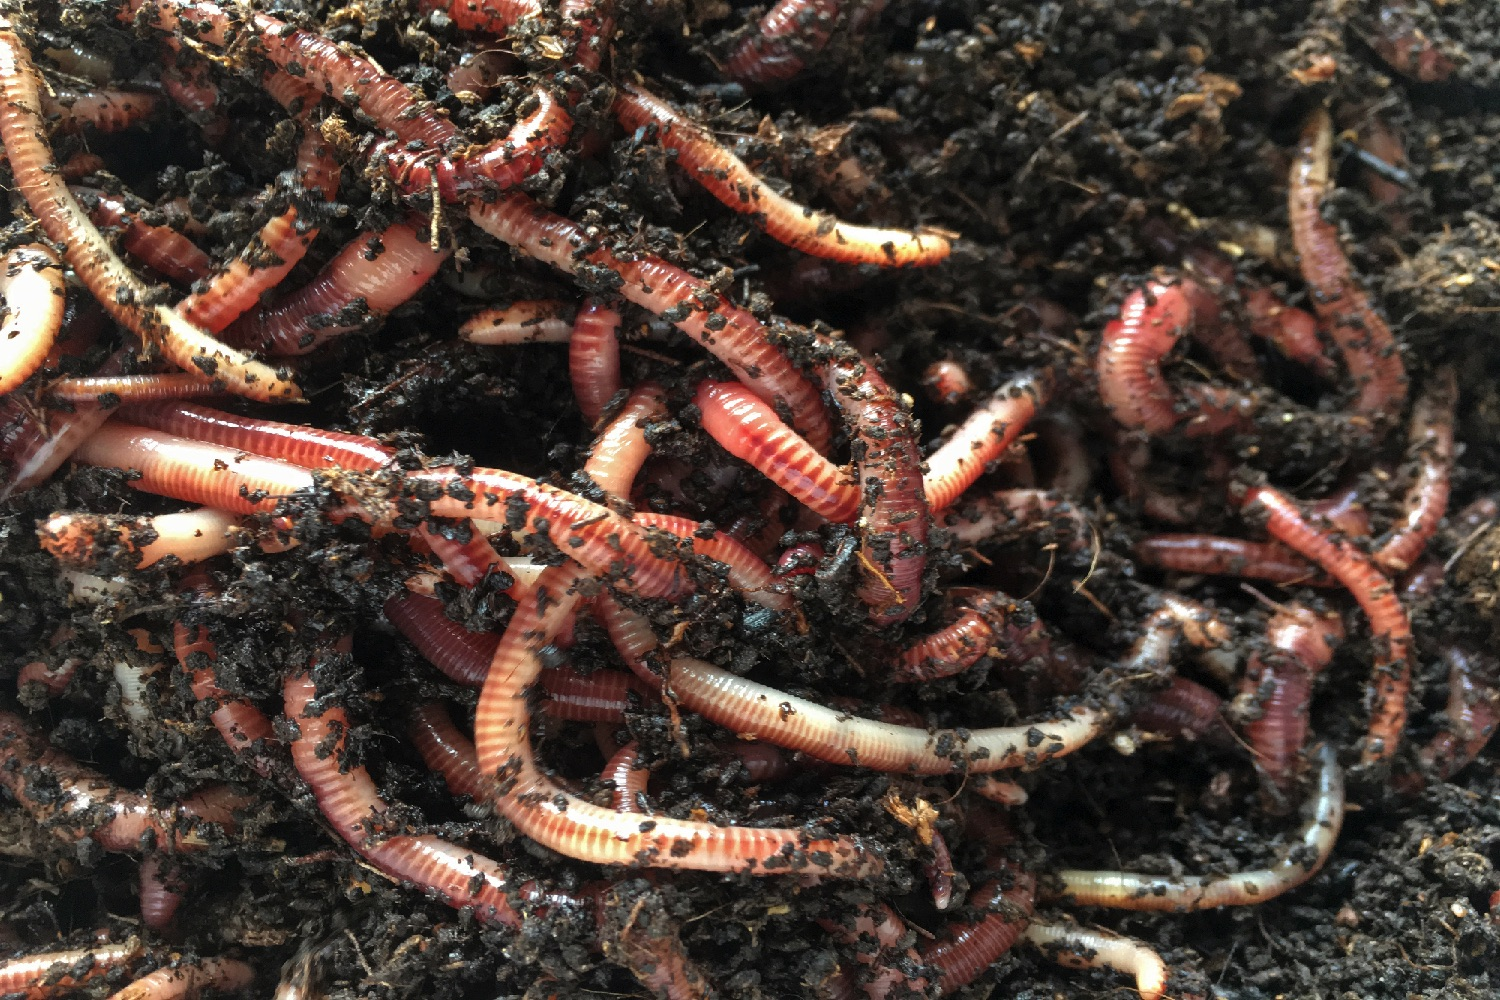 A study of the effects of ph on earthworms